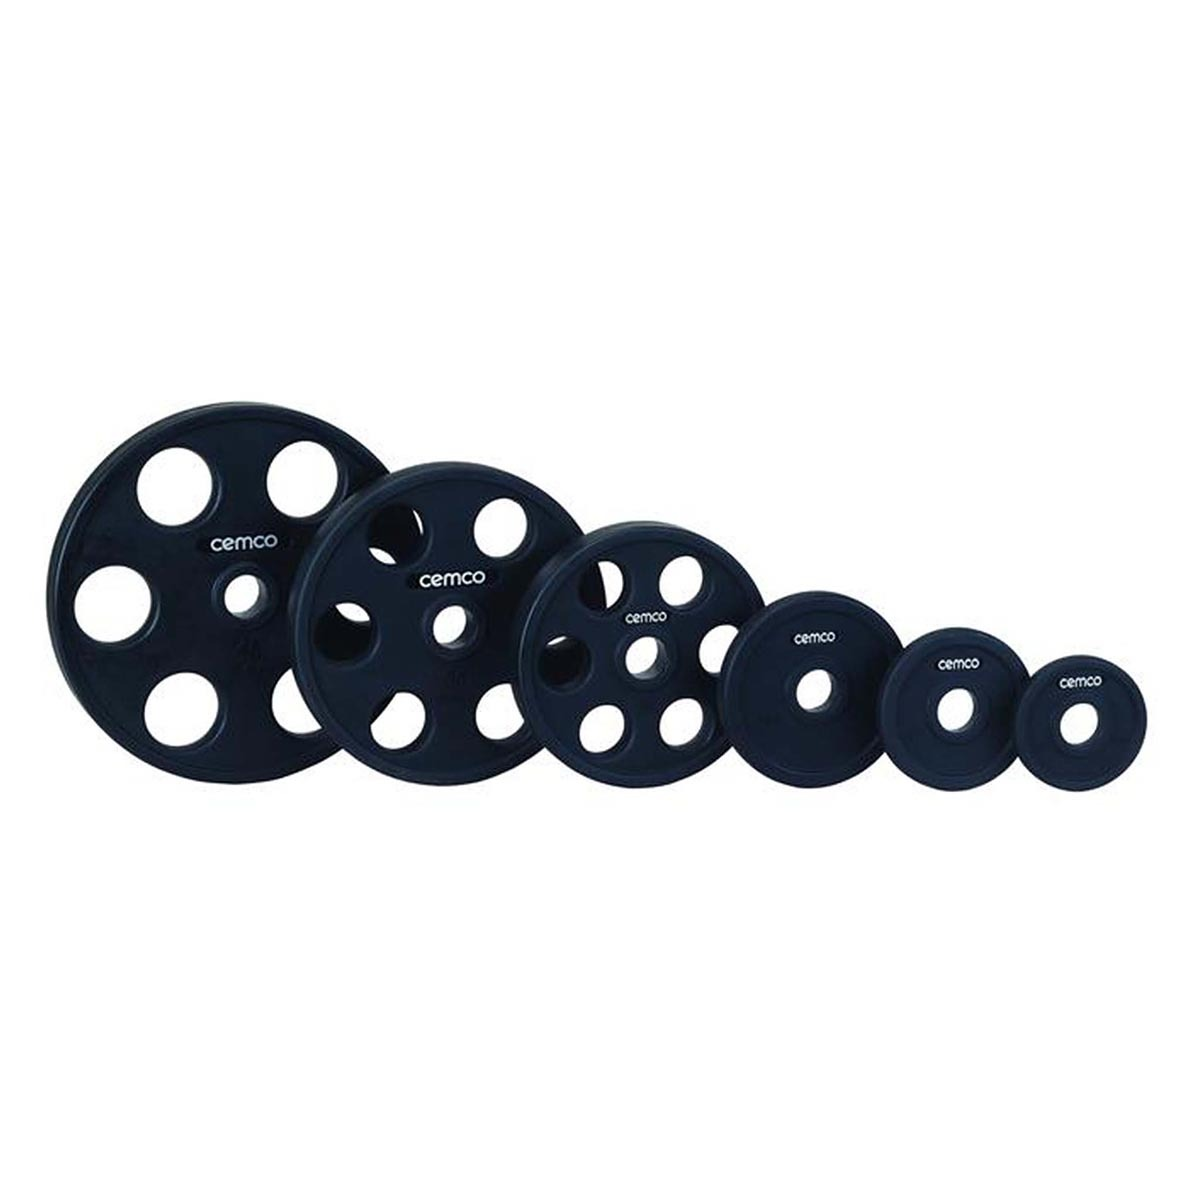 Richmond Free Weights - Cemco Urethane Olympic Weight Plates - Lifestyle Equipment